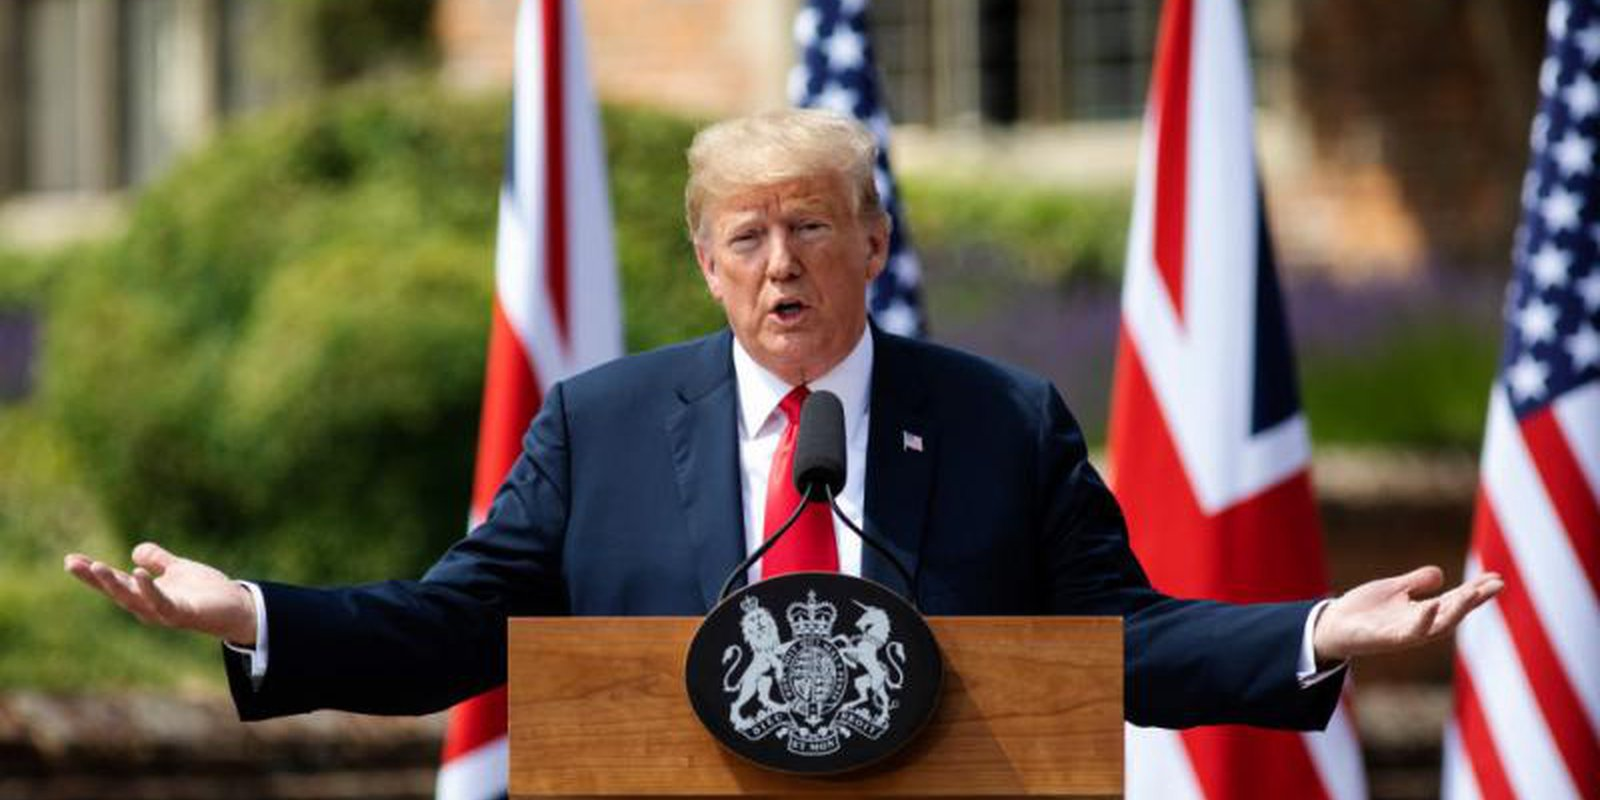 Donald Trump at a press conference at Chequers during his 2018 visit to Britain. Photo: Getty Images.